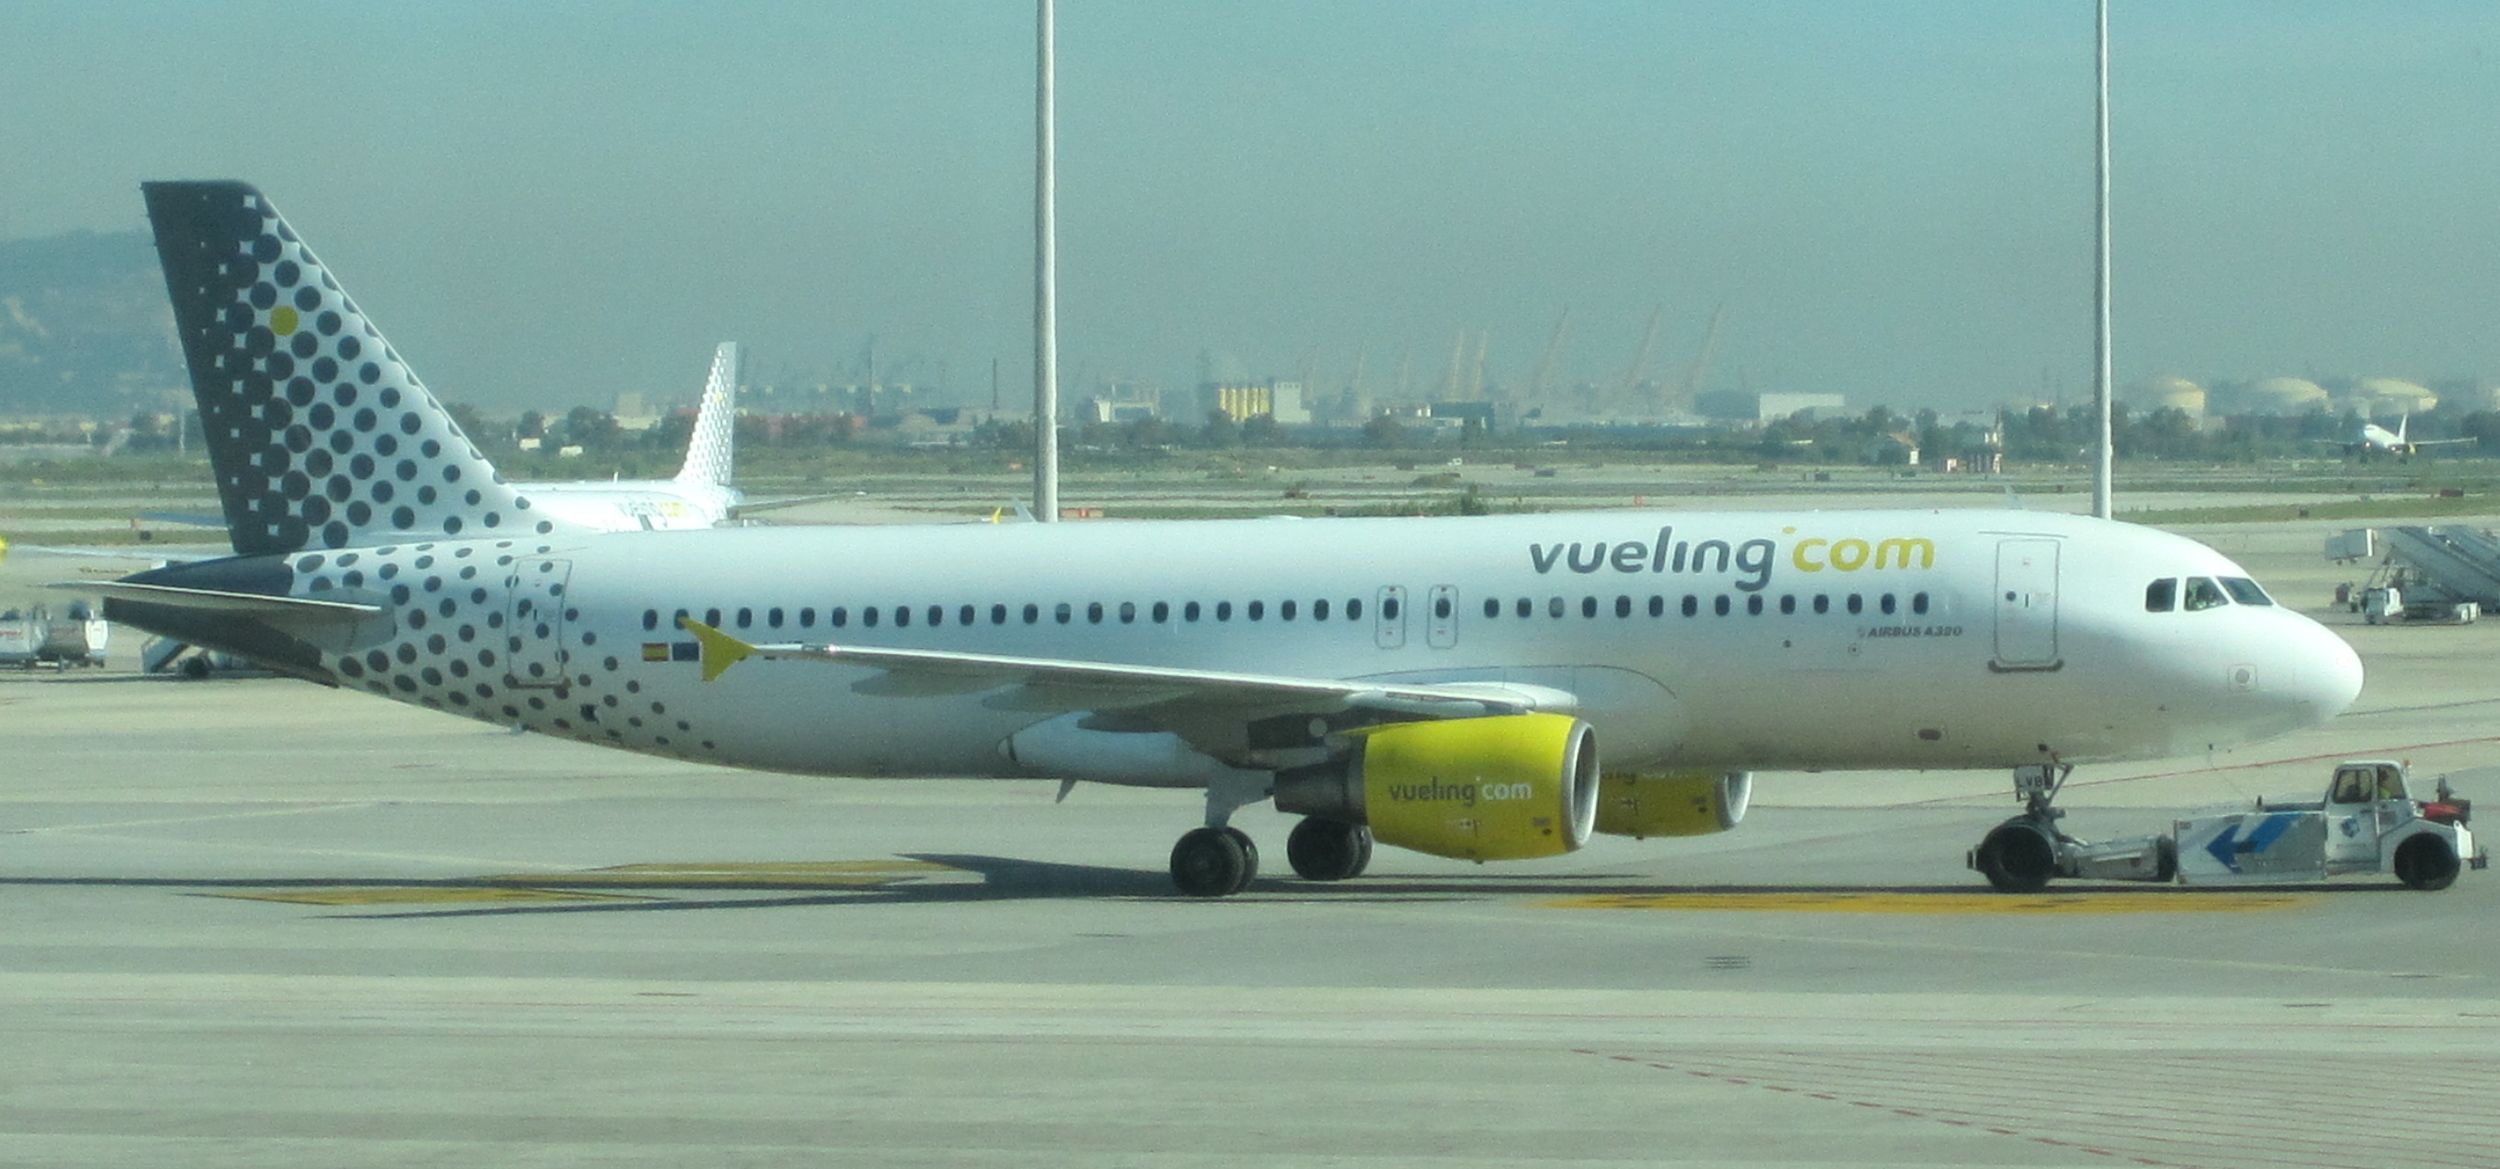 Vueling is planning a bunch of new Russian and Ukrainian routes